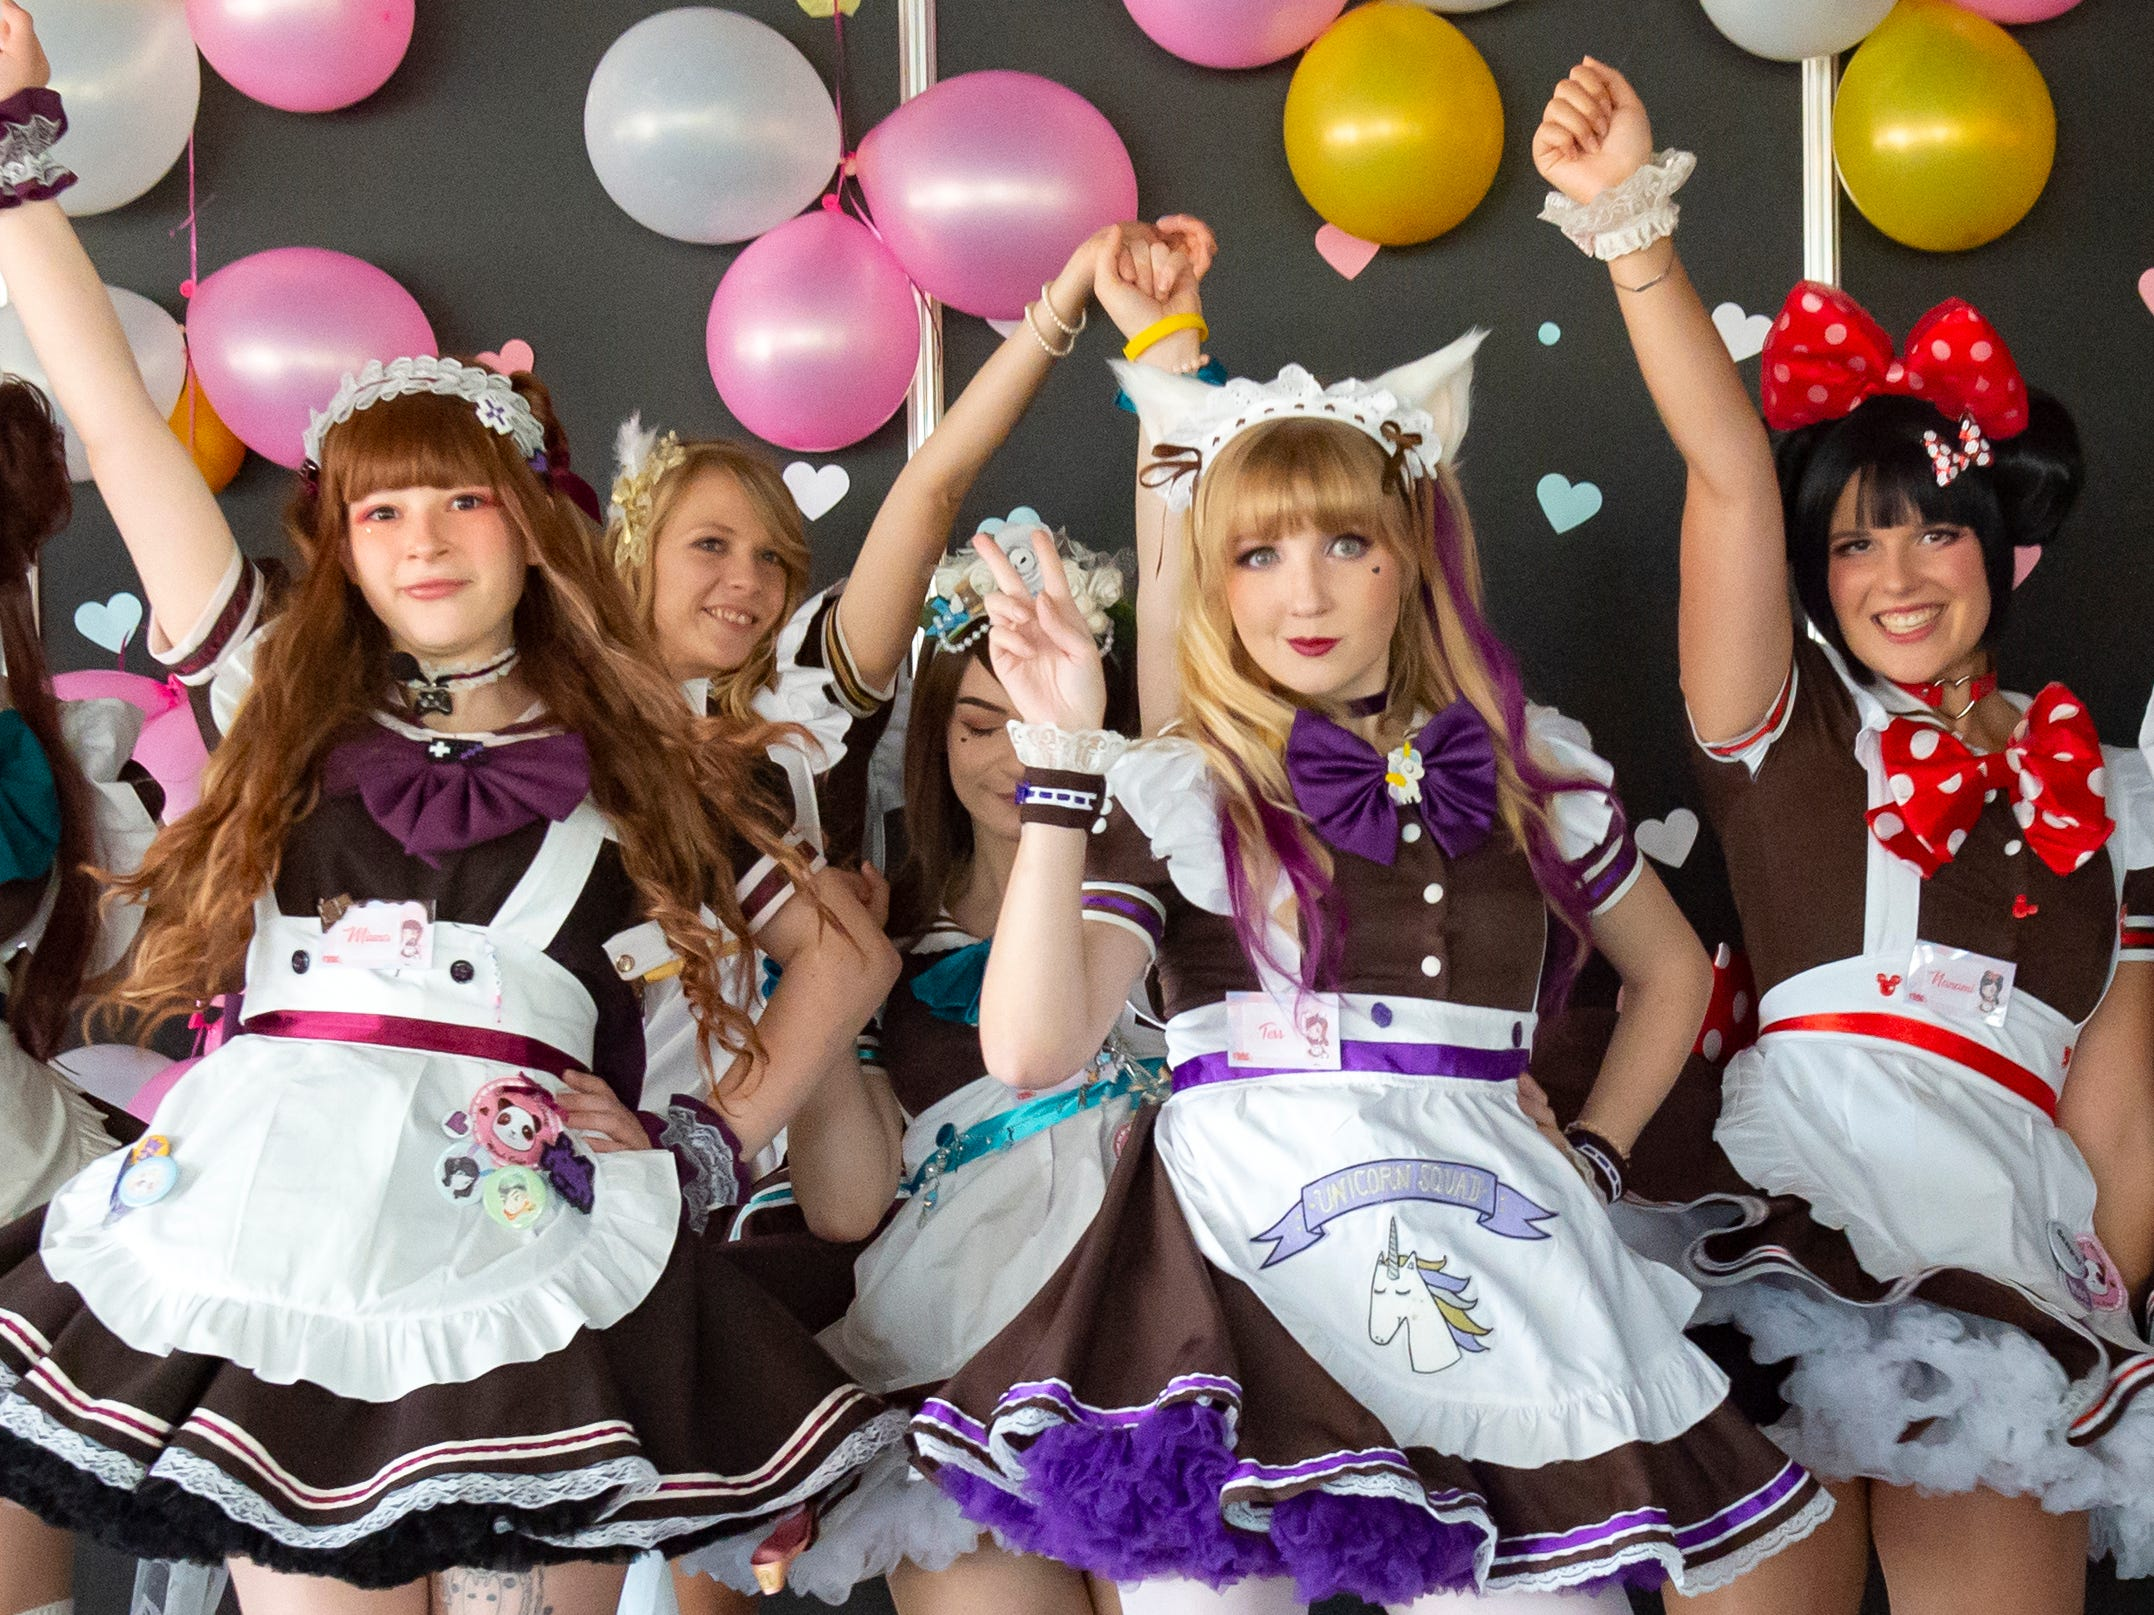 """Artists of thje """"Maidcafe"""" dance perform at the community event MAG in Erfurt, central Germany, Friday, Oct. 5, 2018. Occupying an area of 96,875 square feet, the show attracted 117 exhibitors from the areas of games, cosplay, creator, artists, Japan, fashion and merchandise until Sunday."""